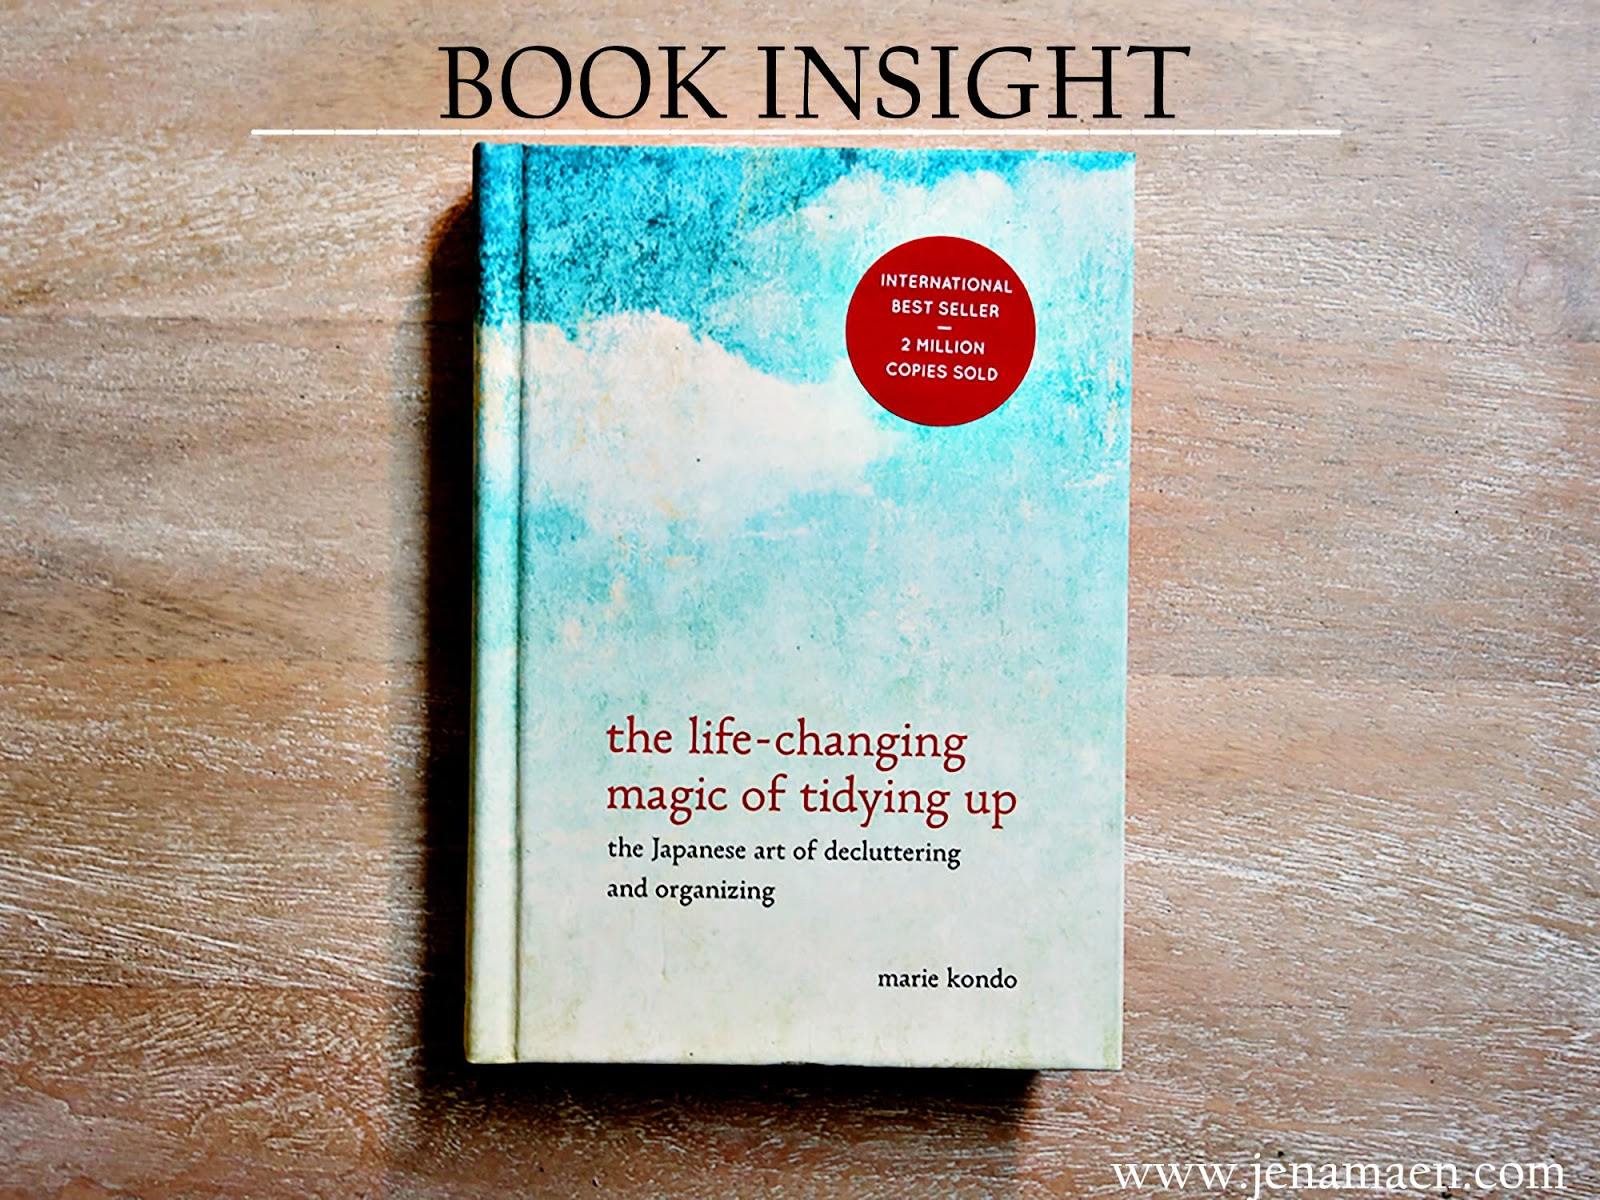 Book Insight: The Life-Changing Magic of Tidying Up